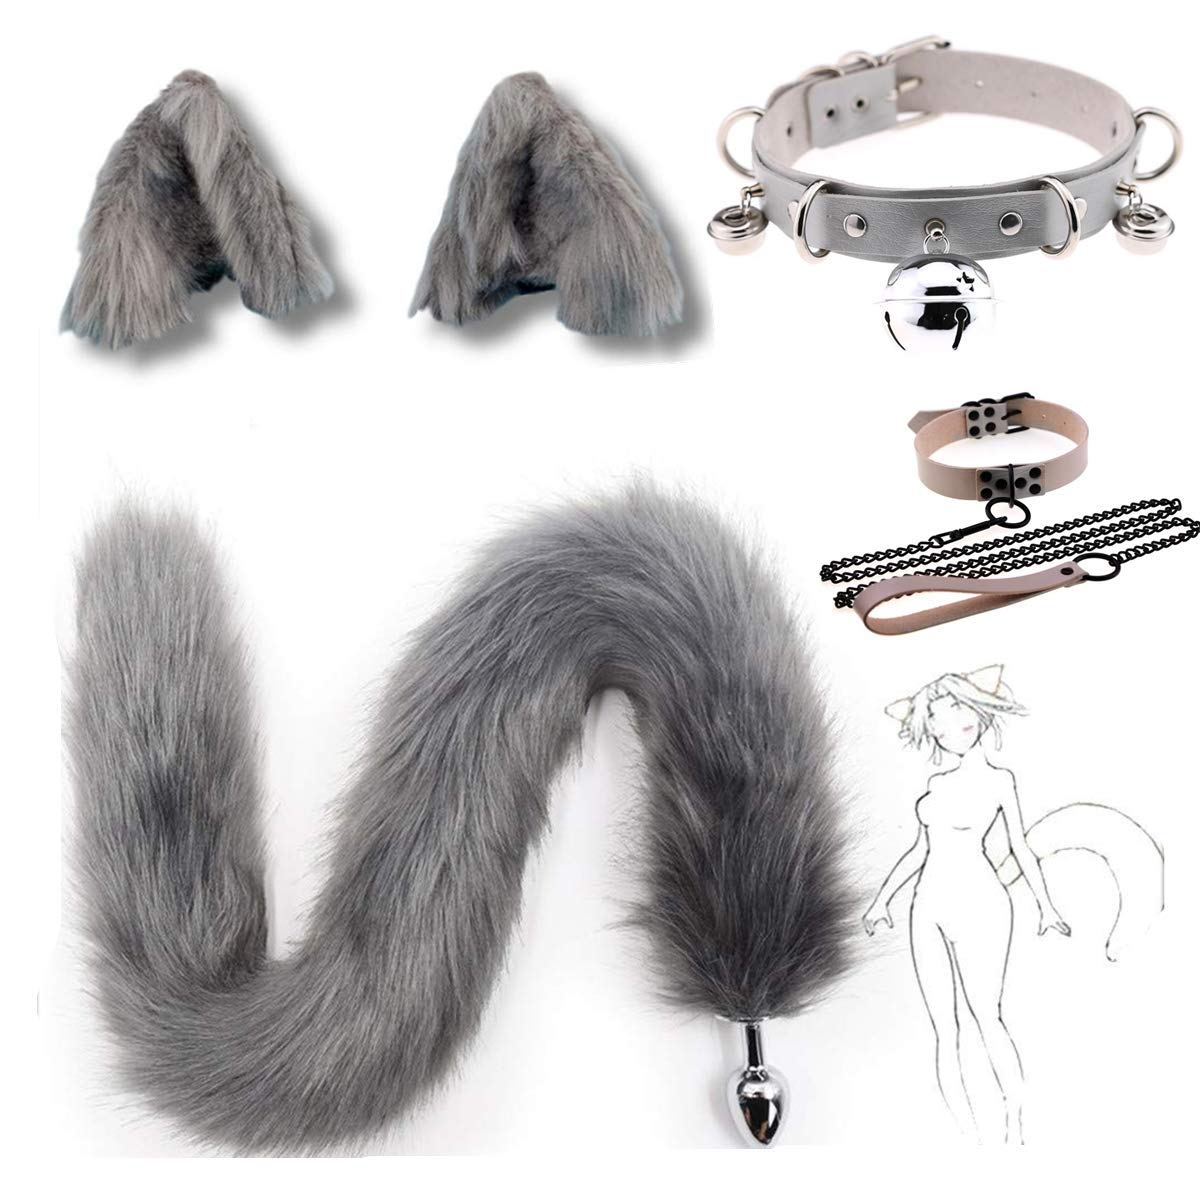 Interval 3 Sizes Fluffy Faux Fox Tail & Cat Ears Headband Charms Role Play Costume Party Cosplay Prop(Size-M)